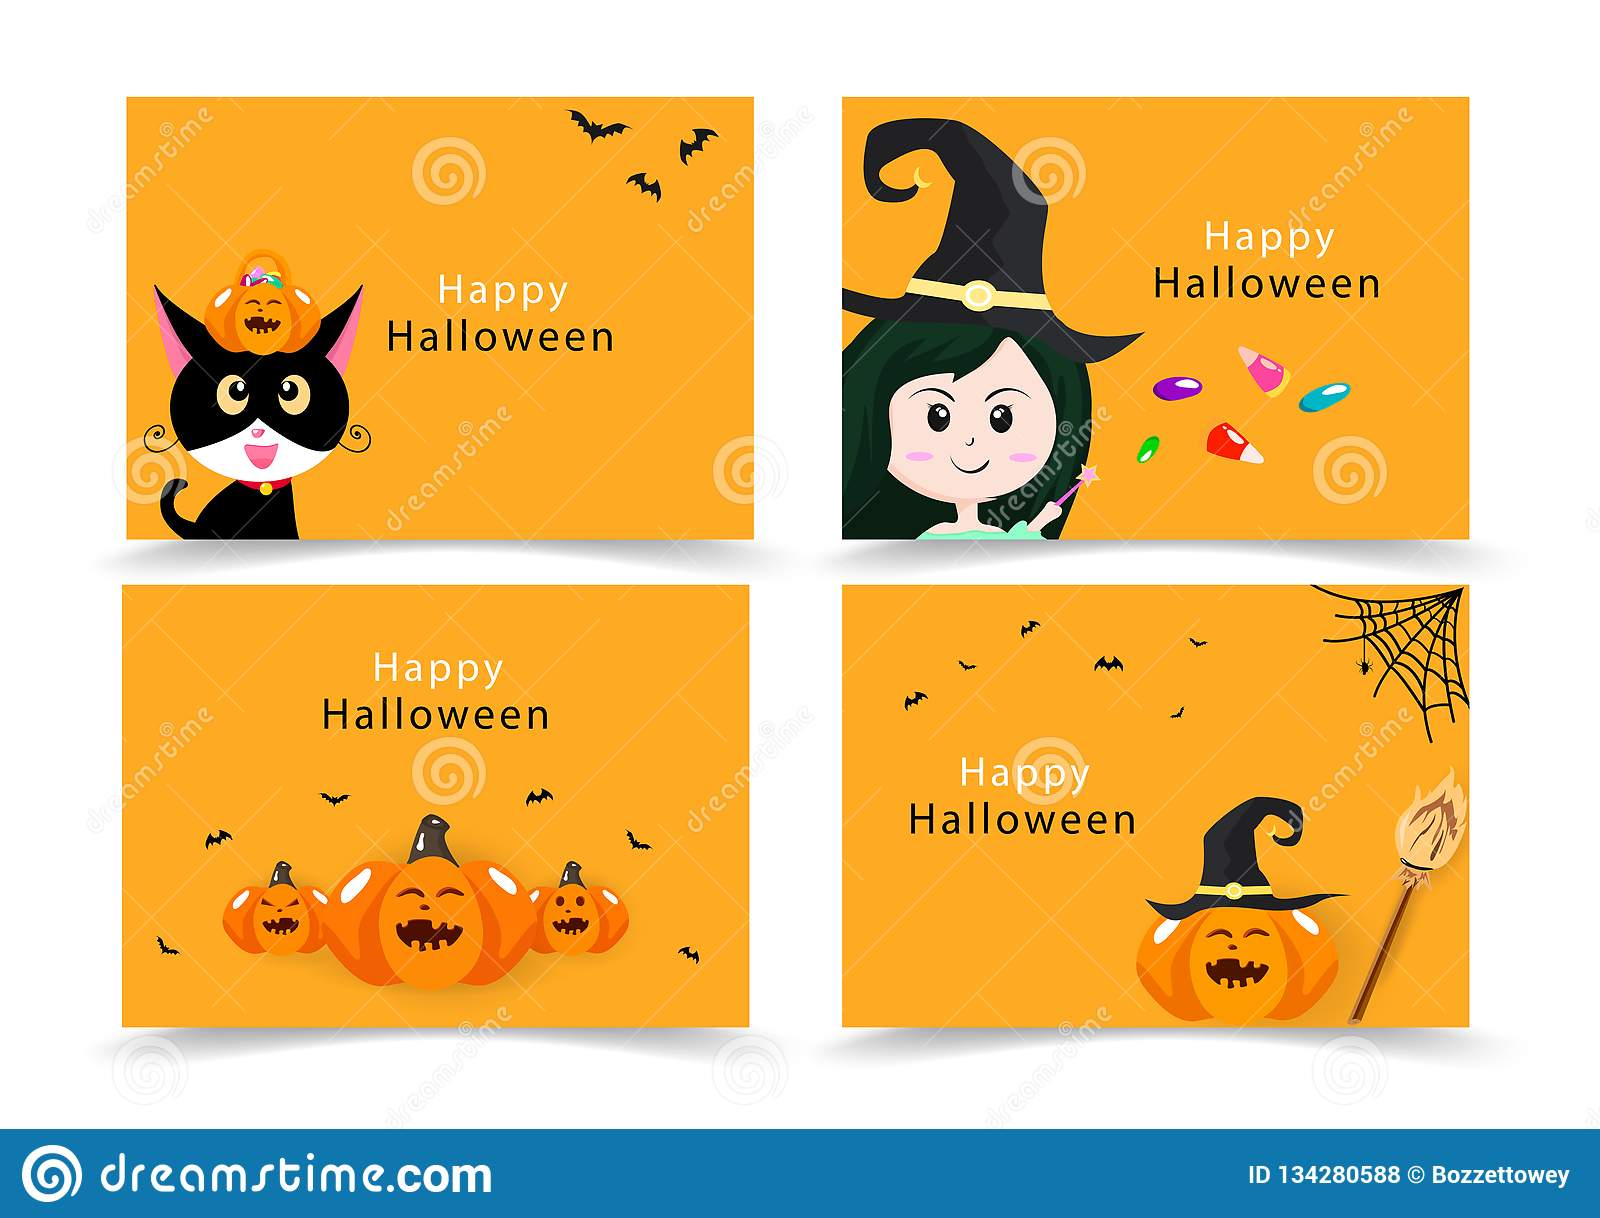 Halloween card, invitation greeting, happy cat, witch, candy and pumpkin party banner kids collection, cartoon flat design cute